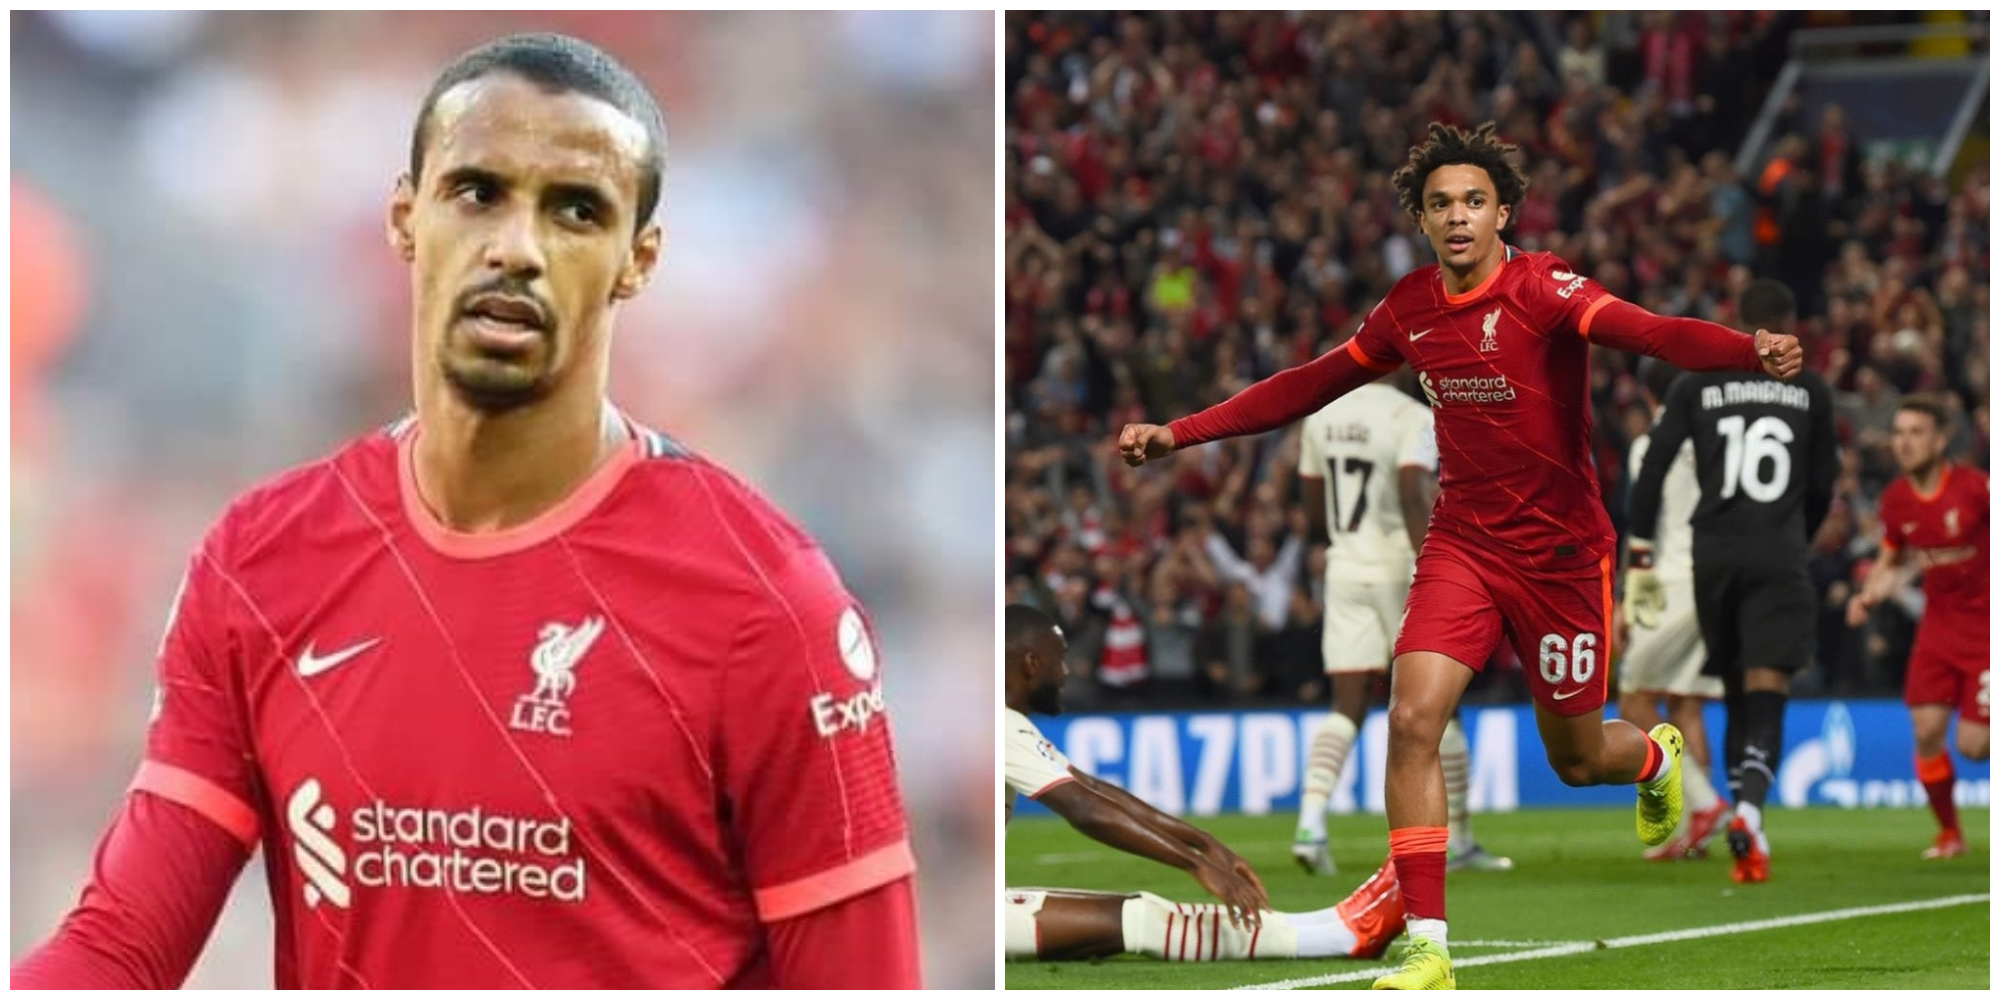 Explained: Trent Alexander-Arnold and Joel Matip's absences from Liverpool squad